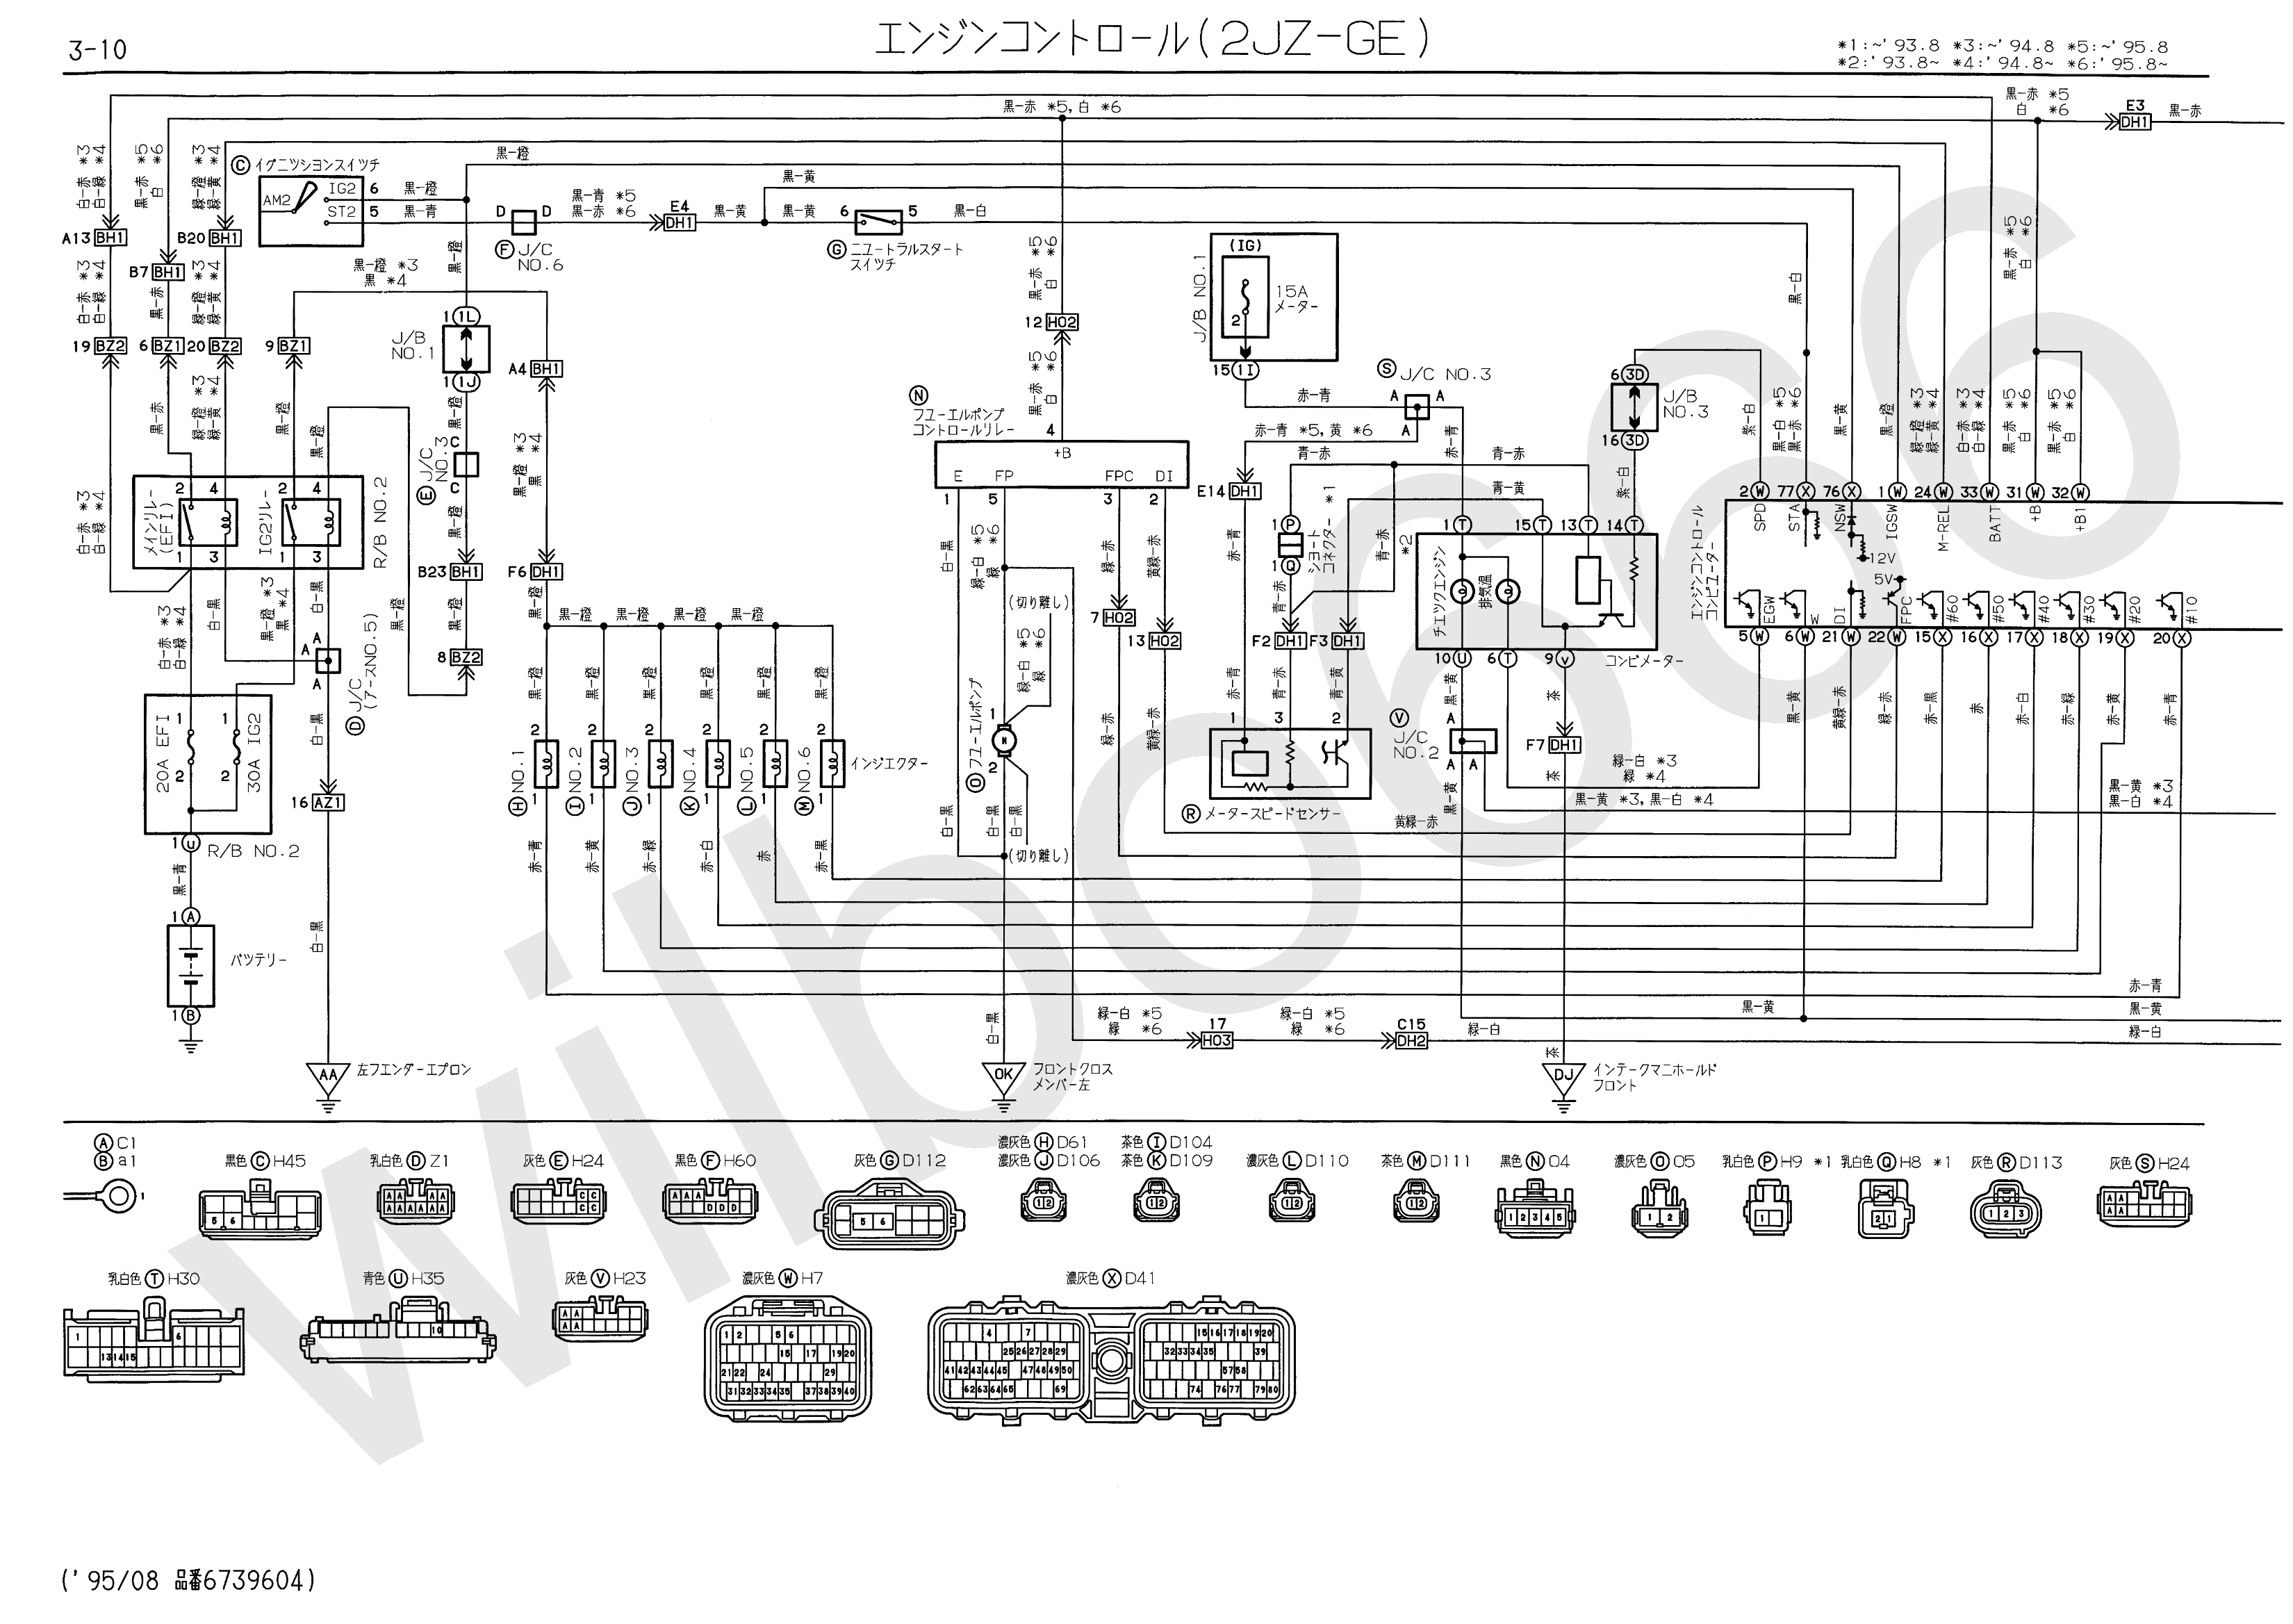 JZS14%23%2C UZS14%23 Electrical Wiring Diagram 6739604 3 10 wilbo666 2jz ge jzs147 engine wiring ge wiring diagrams at virtualis.co